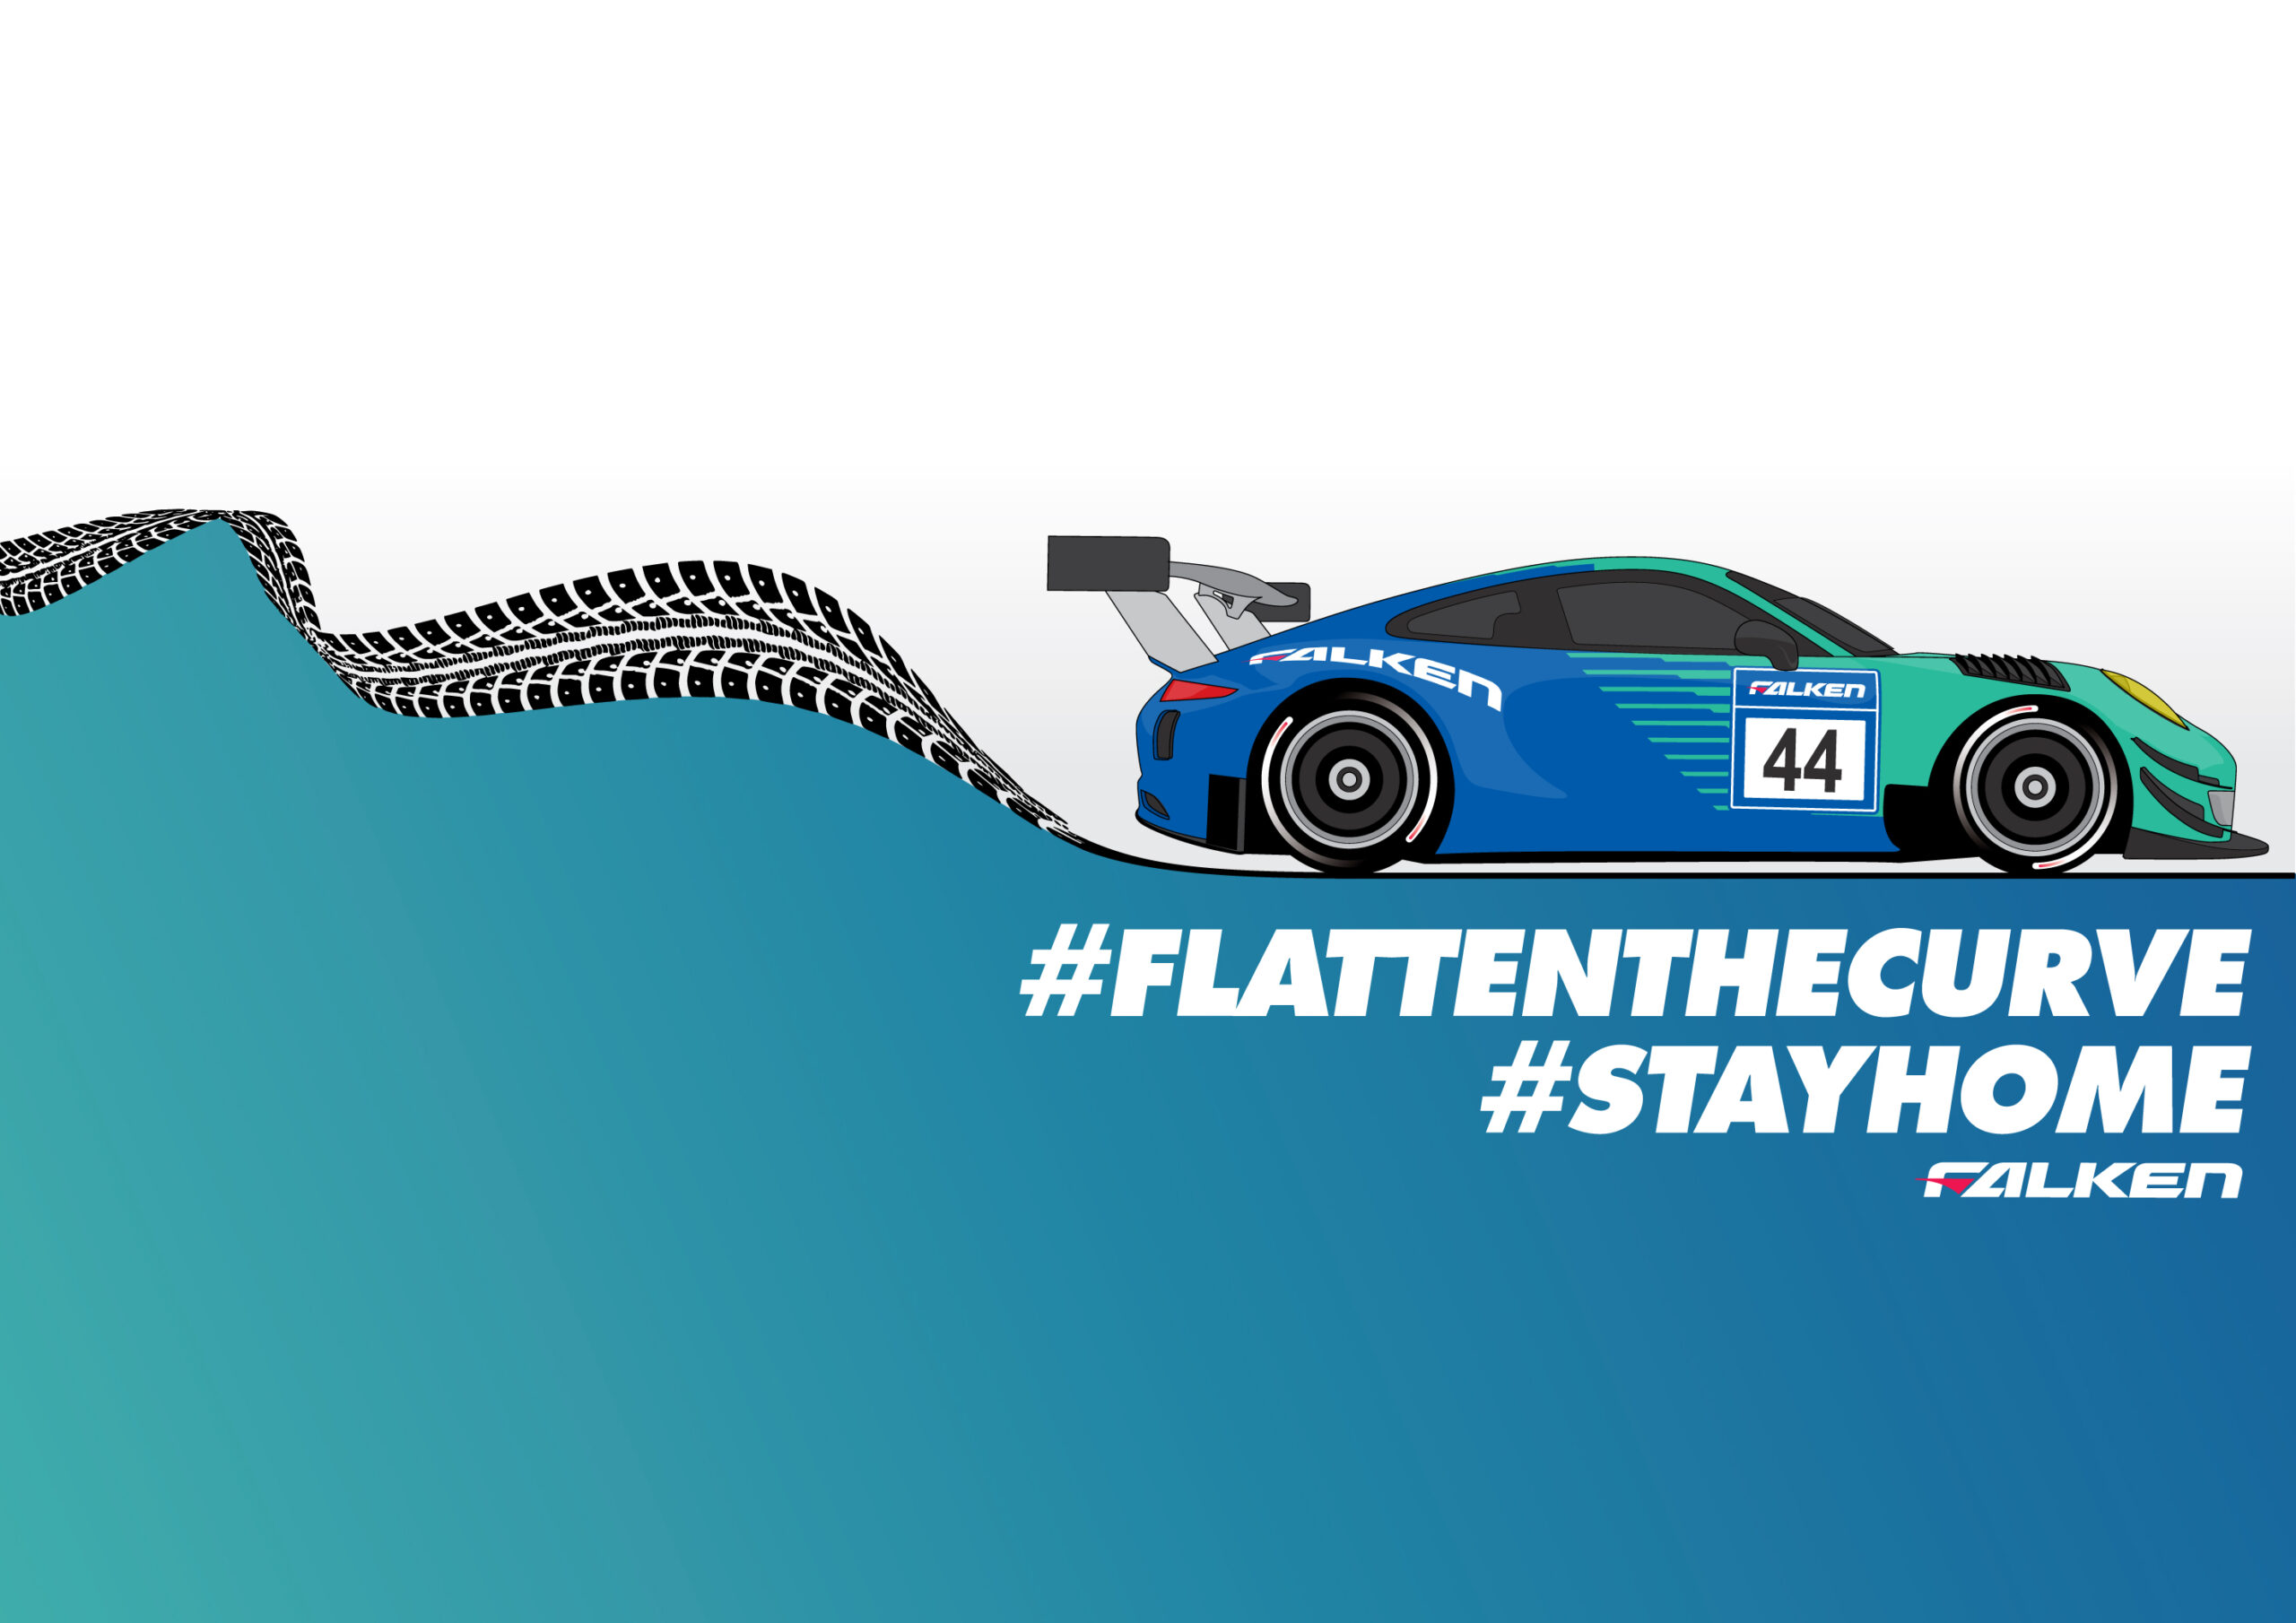 Falken drivers ready for different 24-hour challenge